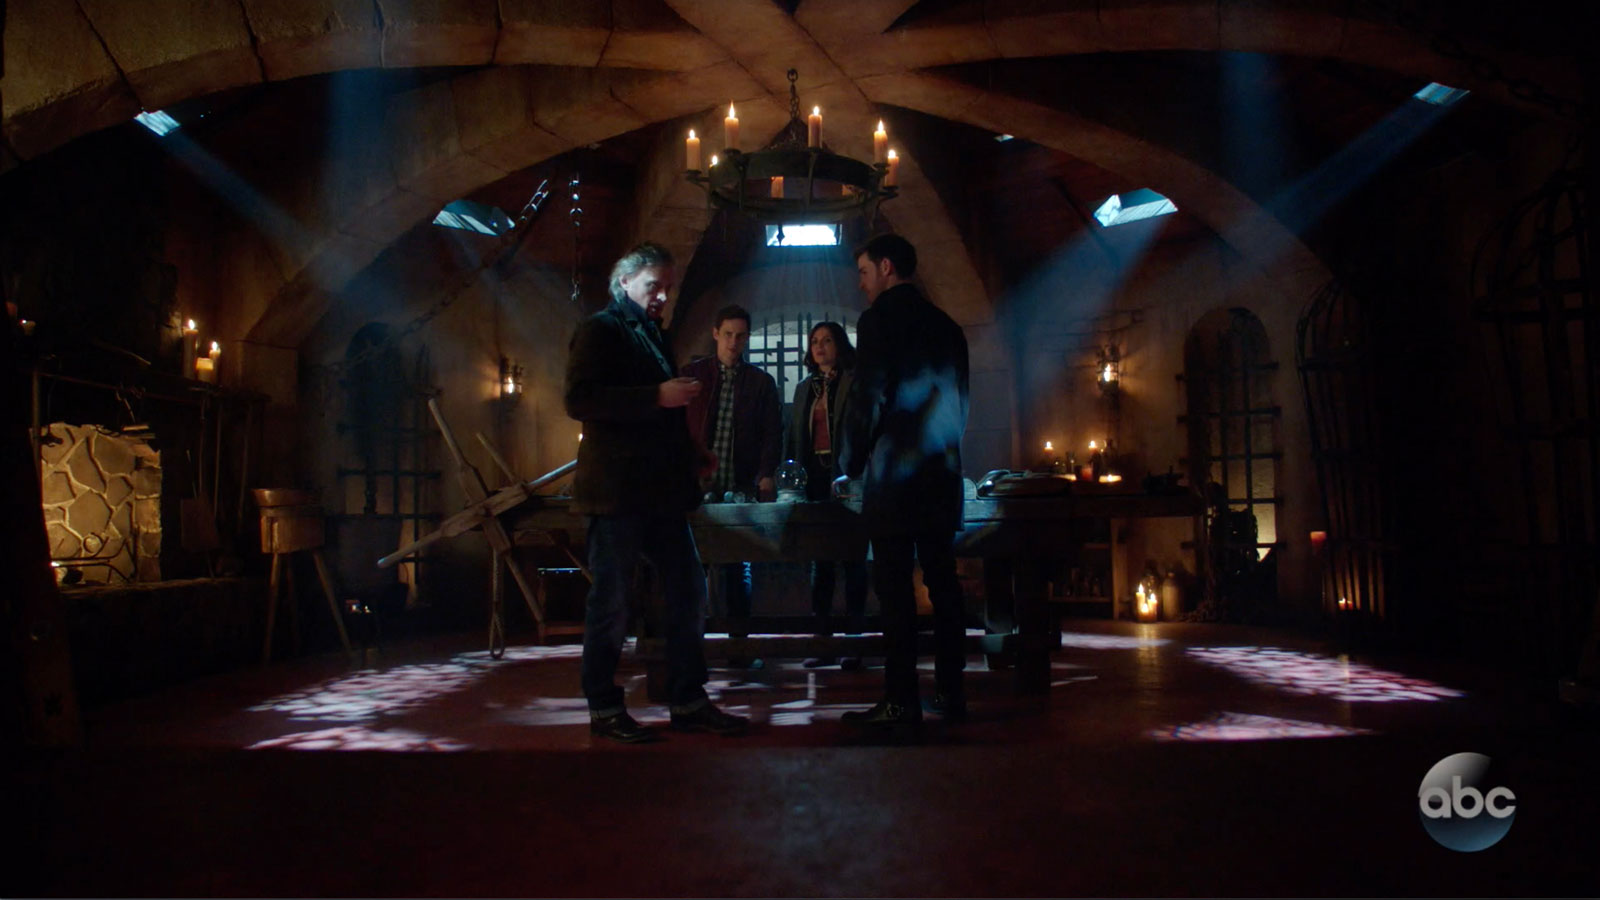 ONCE UPON A TIME: S7 - RUMPLE'S DUNGEON - SCREEN STILL